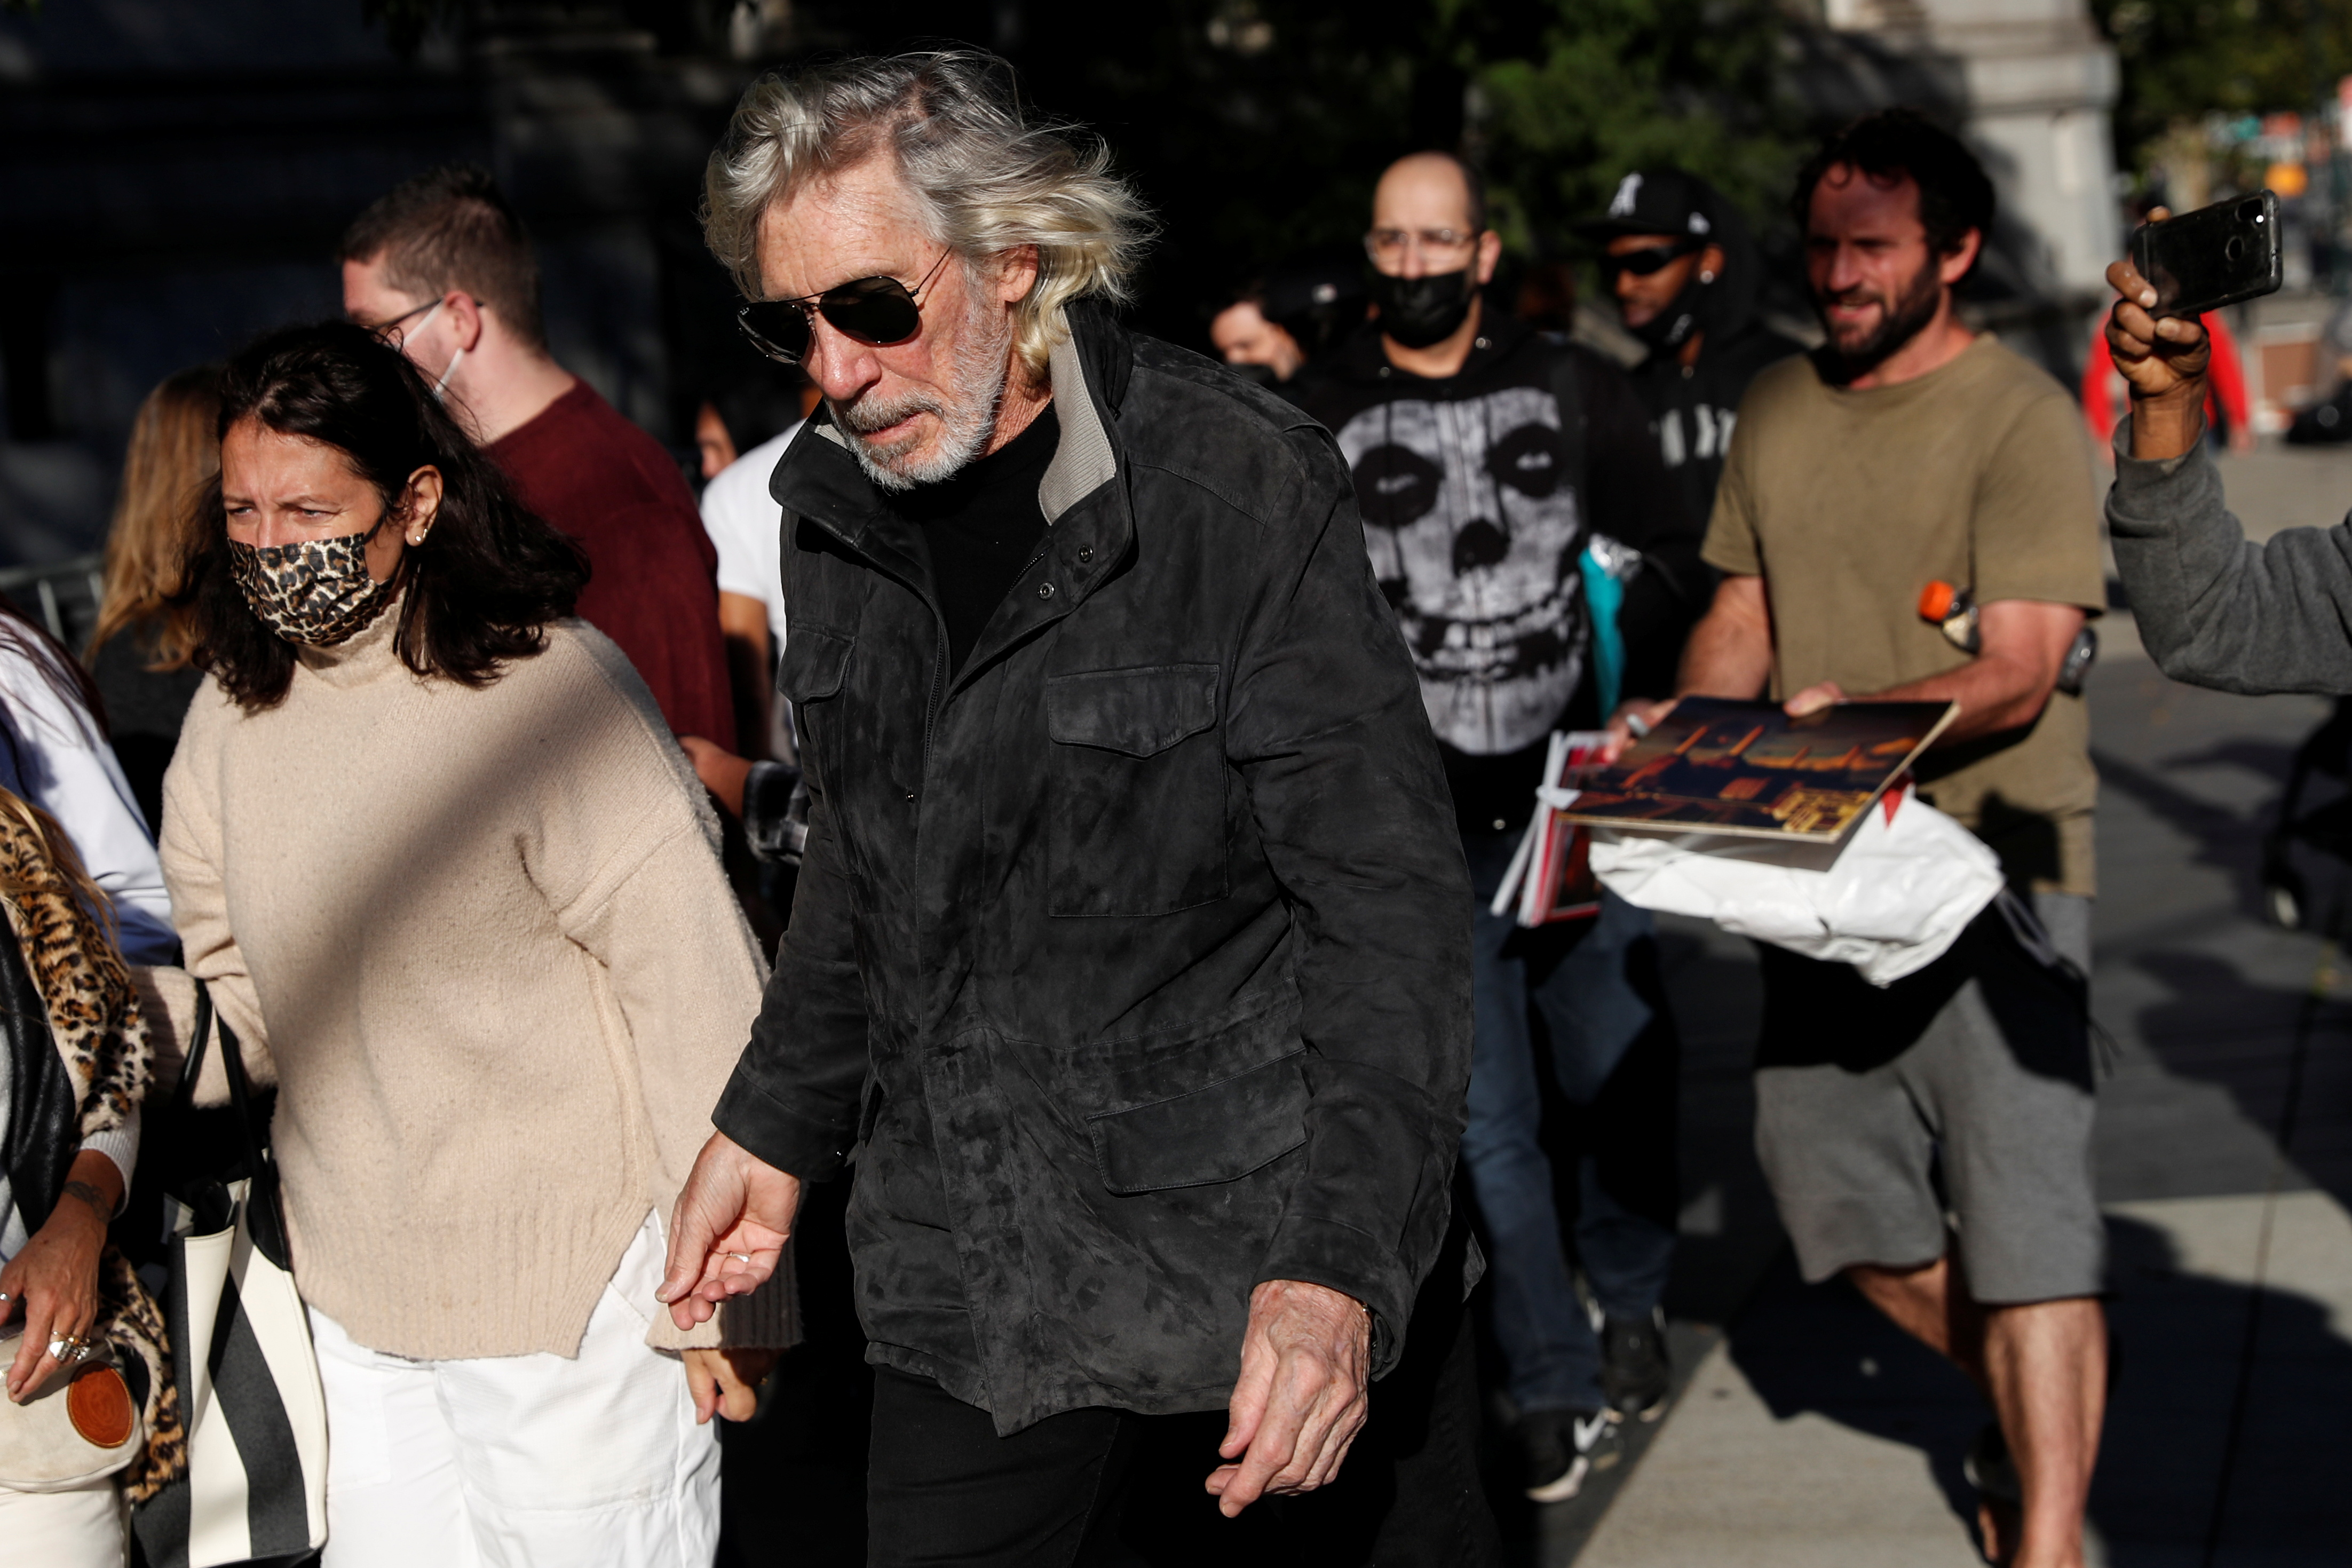 Musician Roger Waters arrives for the sentencing of attorney Steven Donziger, for criminal contempt stemming from Donziger's decades-long legal battle with Chevron Corp, outside the Manhattan Federal Courthouse in New York City, U.S., October 1, 2021. REUTERS/Shannon Stapleton